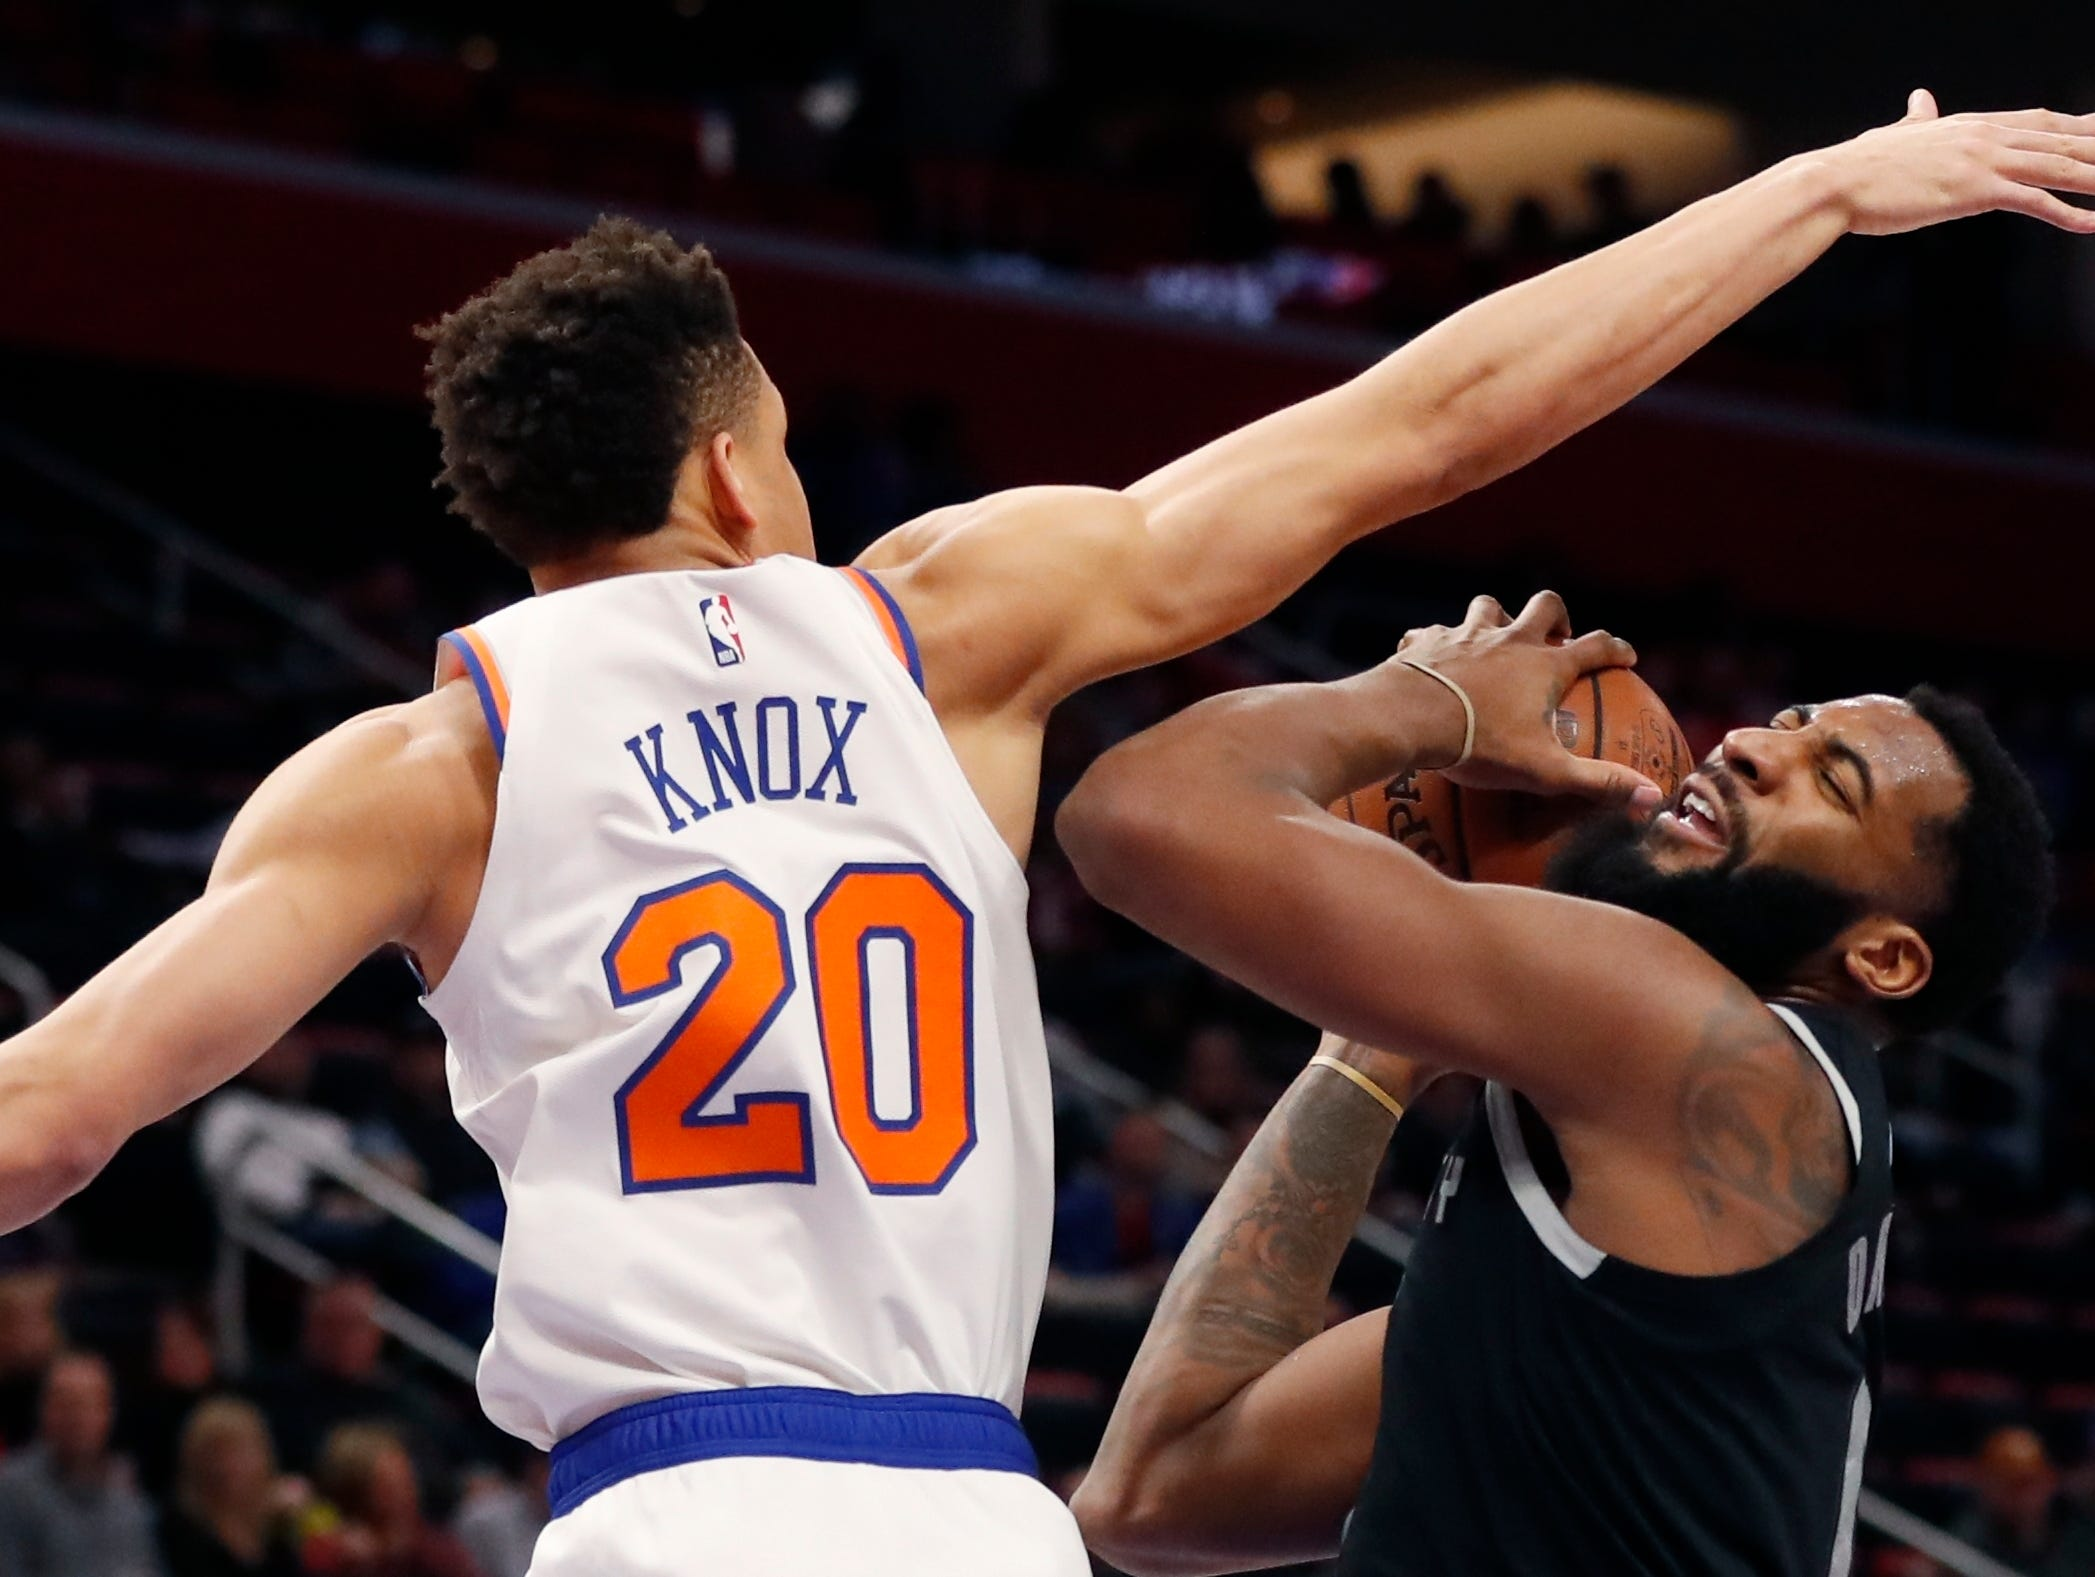 New York Knicks forward Kevin Knox (20) defends against Detroit Pistons center Andre Drummond during the first half of an NBA basketball game Friday, Feb. 8, 2019, in Detroit.